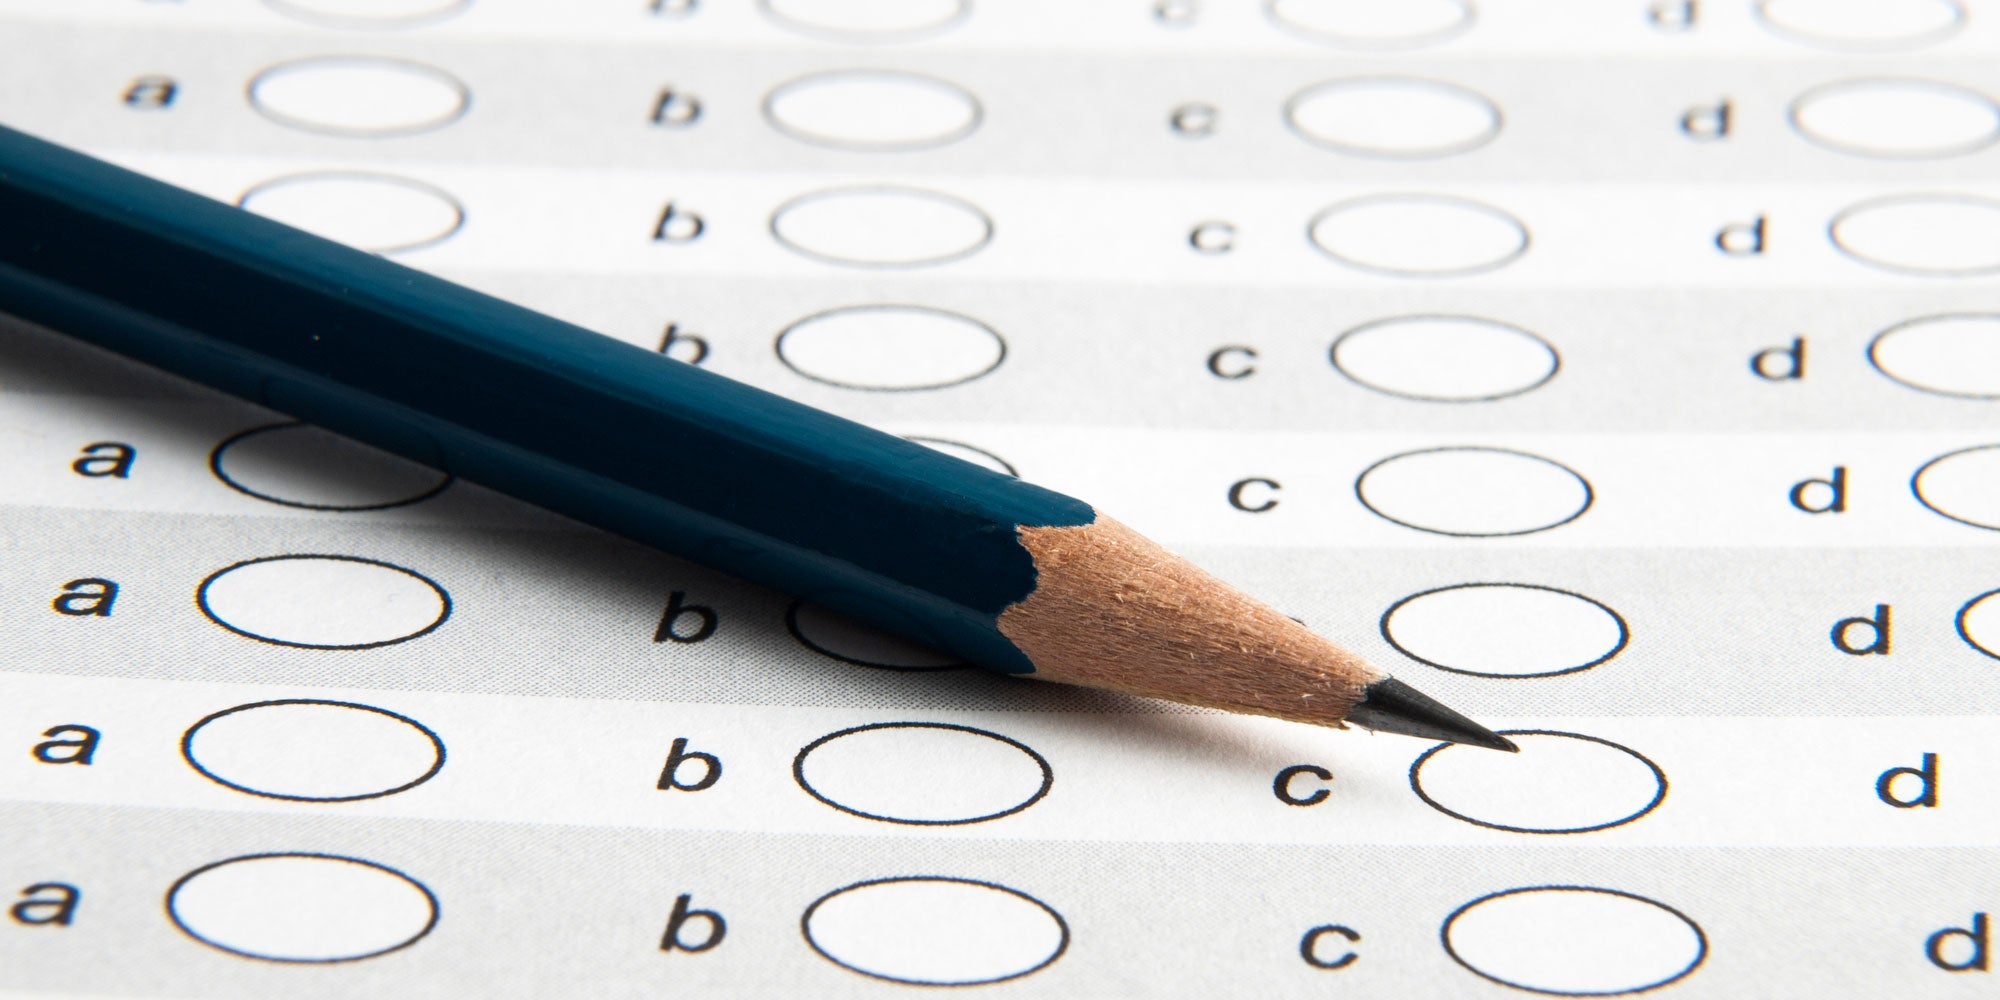 This is the best way to guess in a multiple choice test